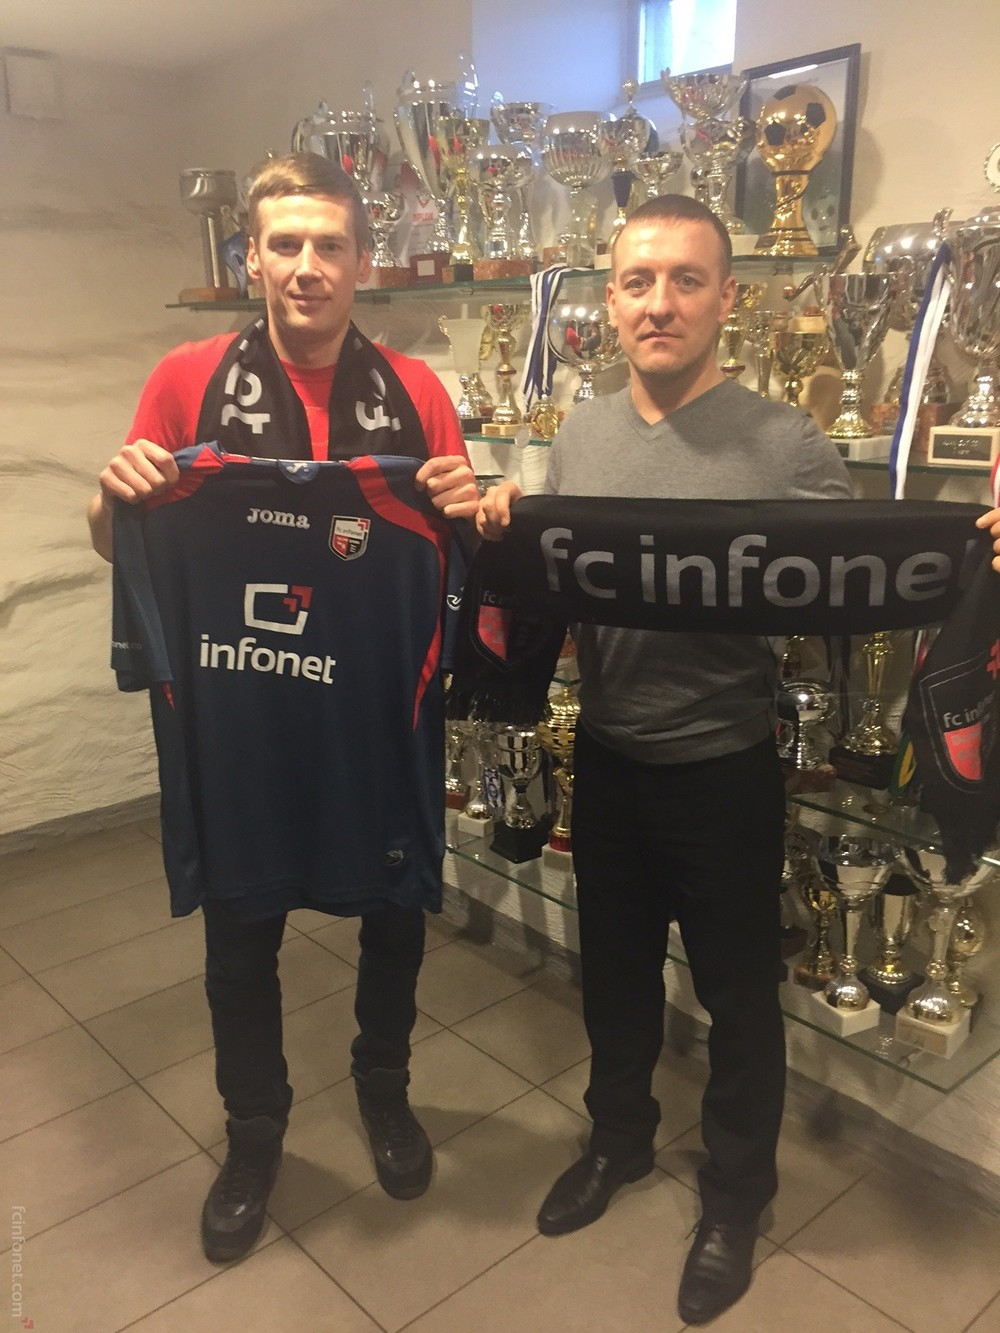 Dmitrjev joins Infonet just a week before season's kick-off